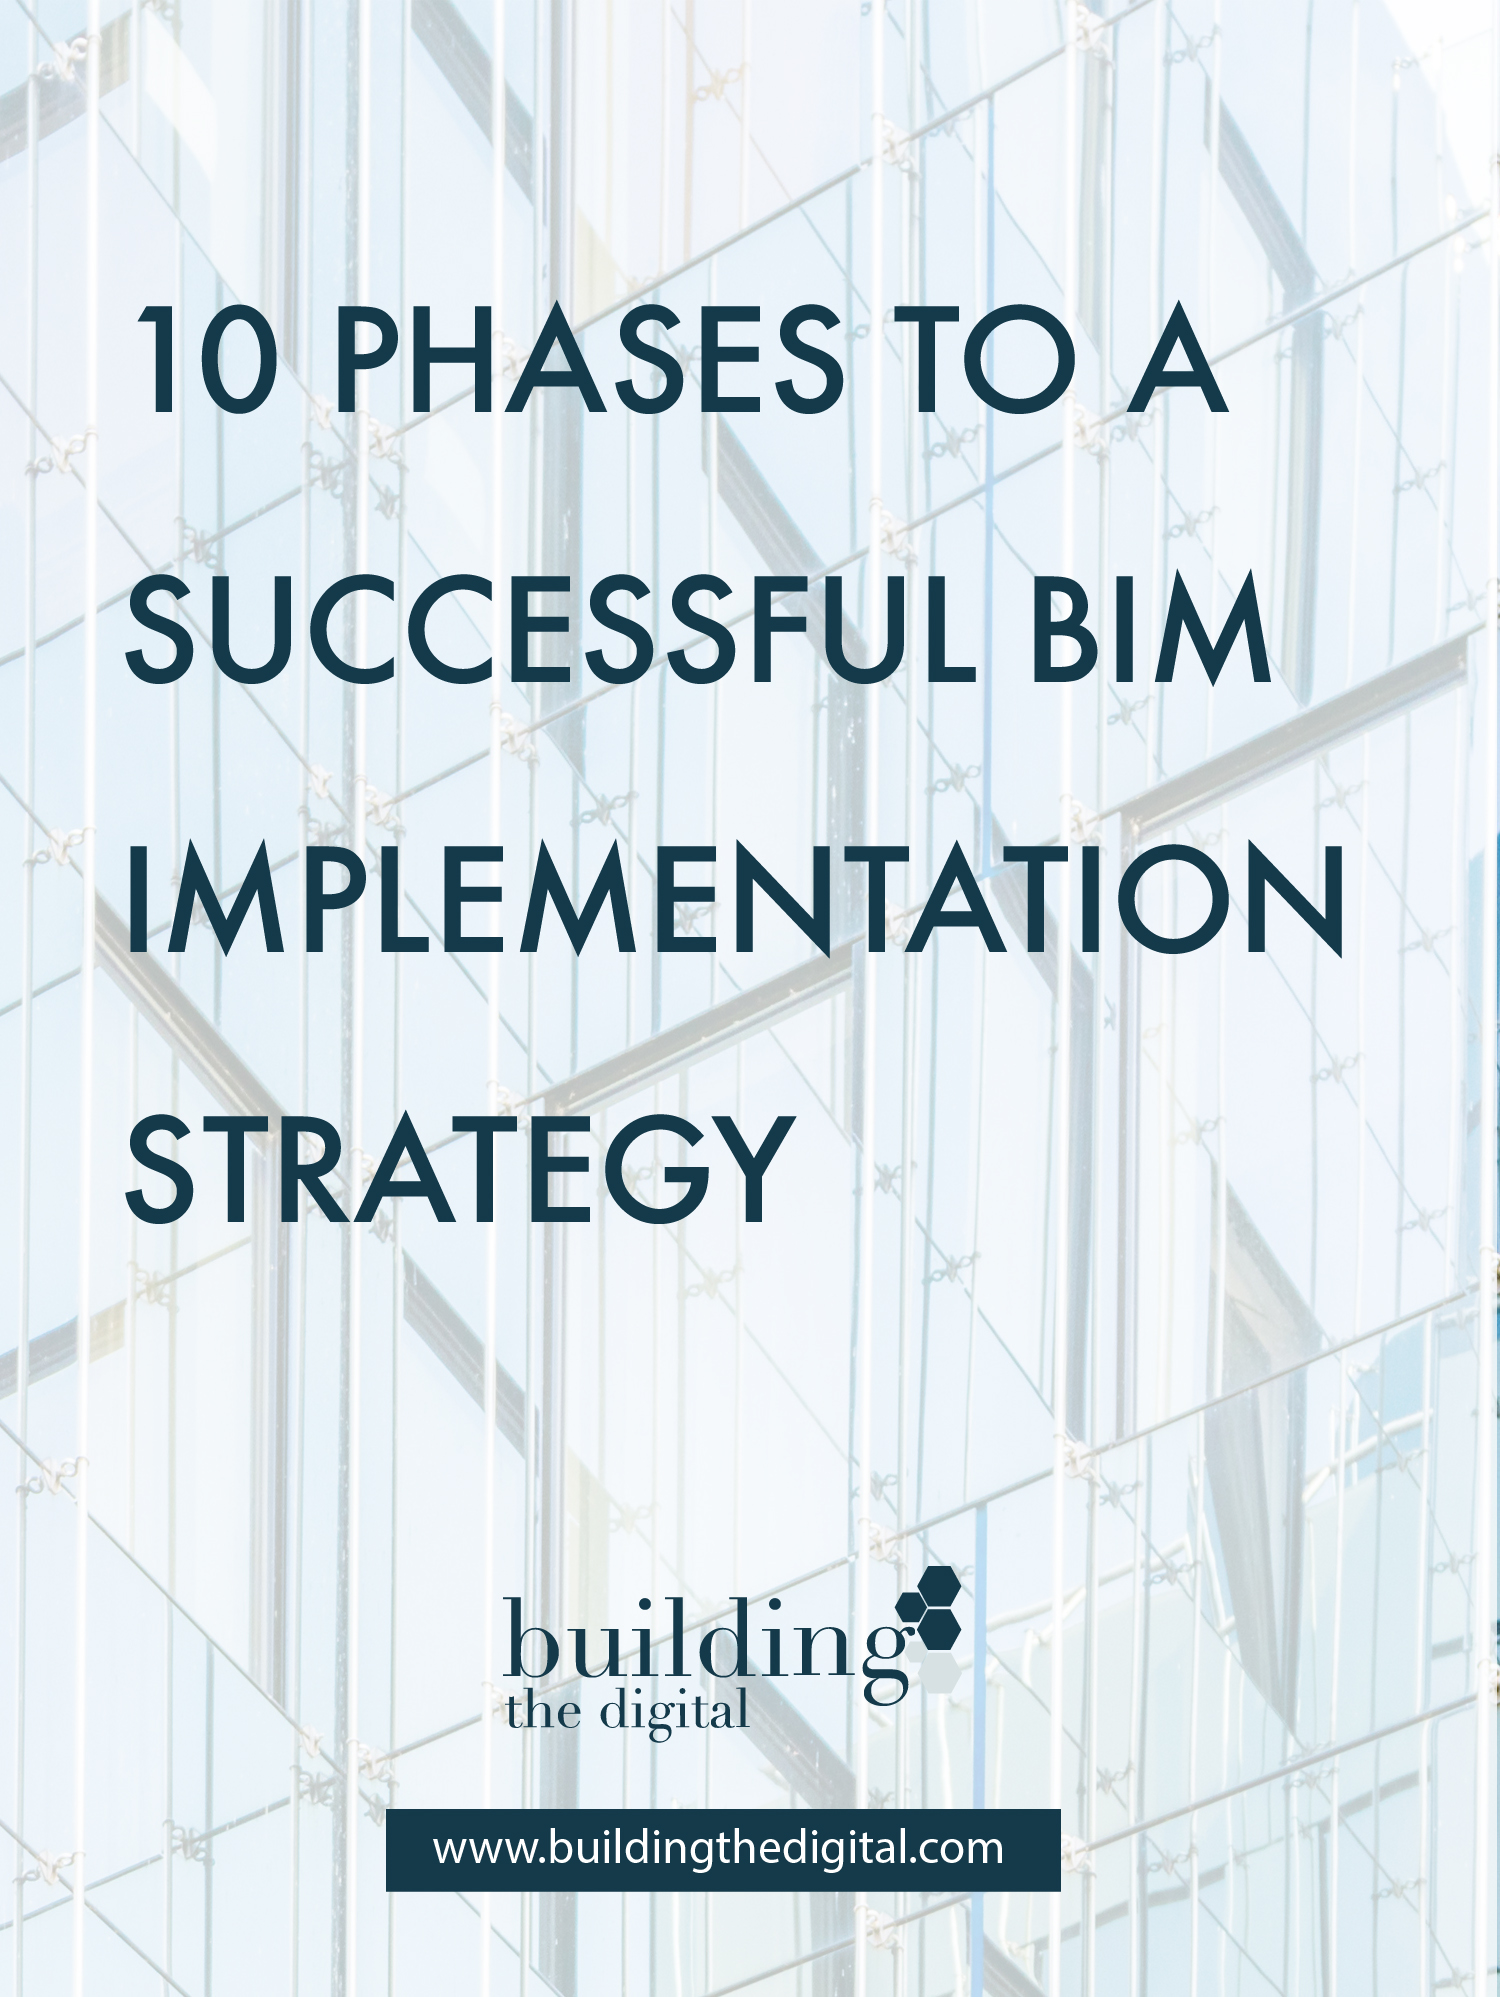 How to start with a bim implementation strategy. Read the 10 phases to adopt BIM successfully here